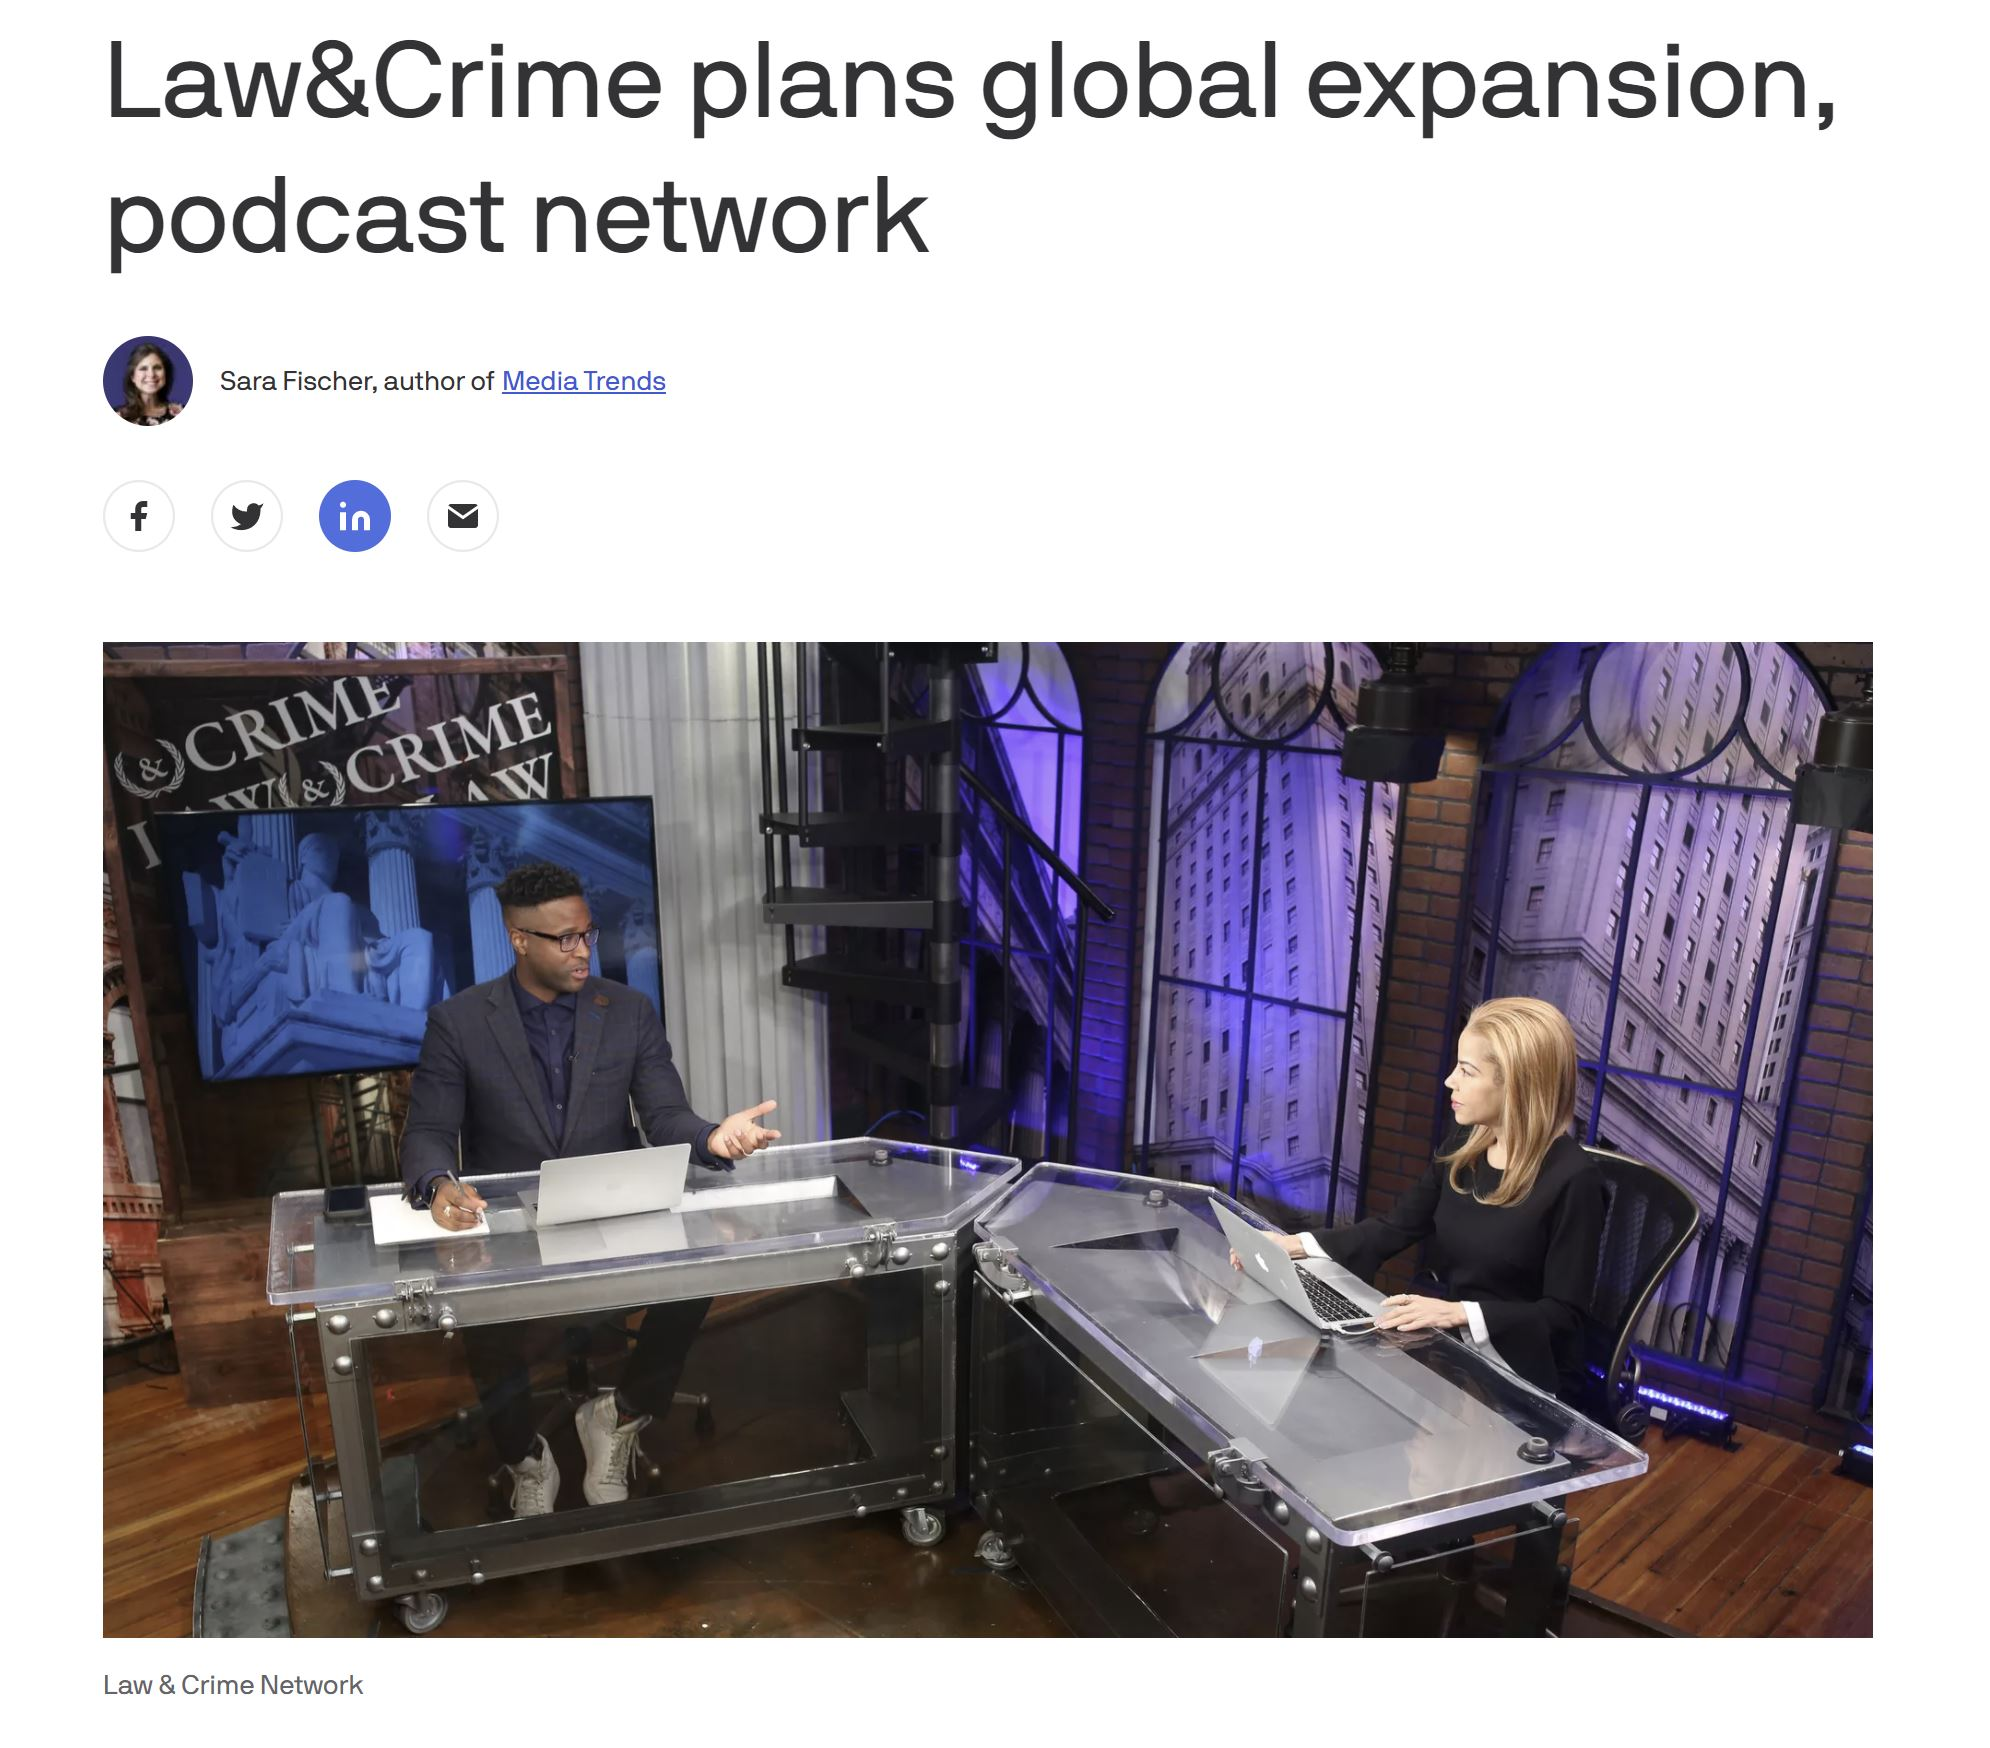 Axios Covers Law&Crime Network's Planned International Expansion and Podcast Network